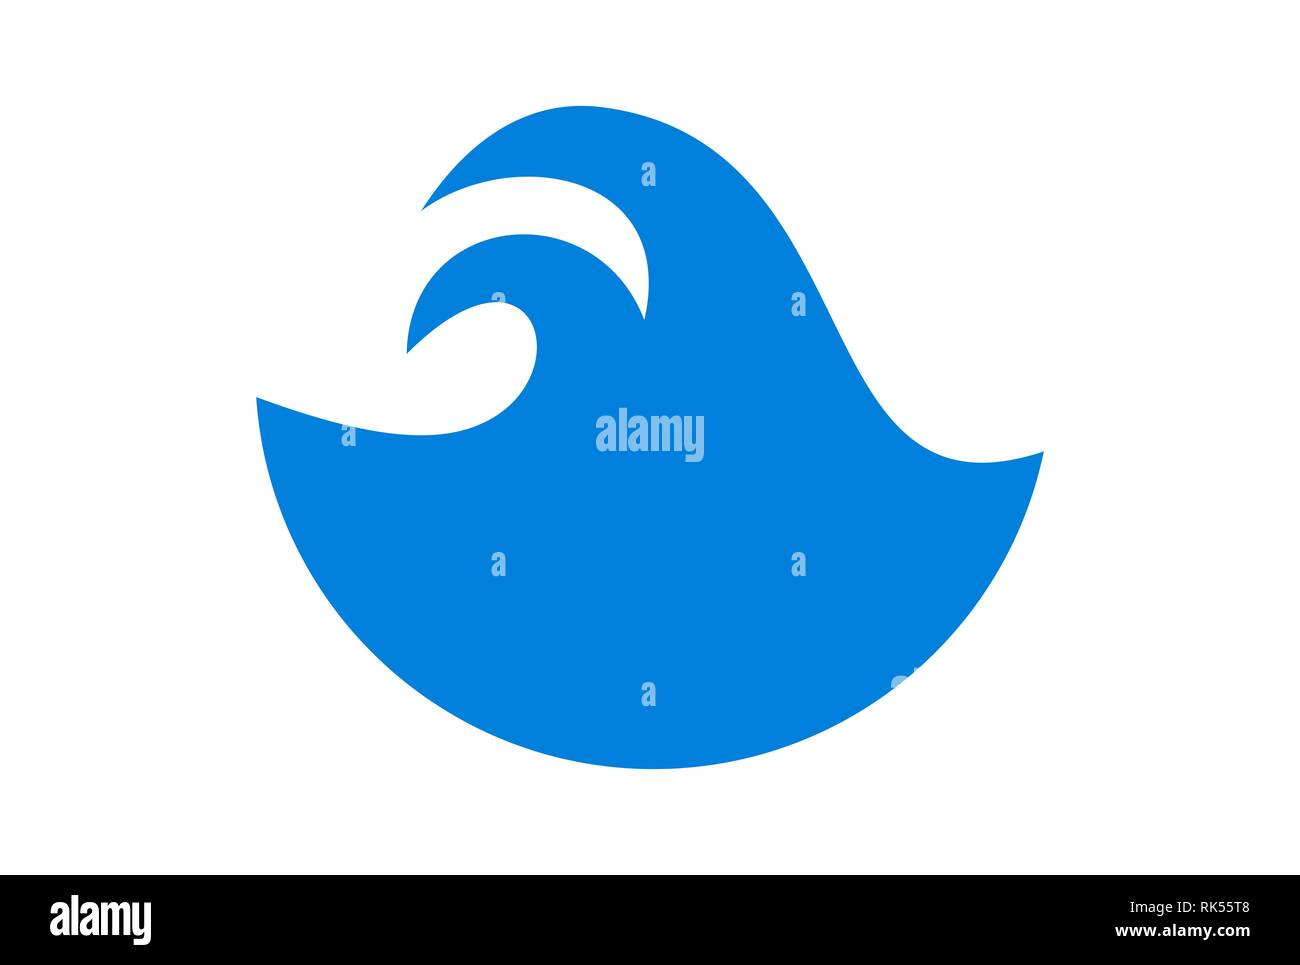 abstract blue waves logo icon brand blue color - Stock Image